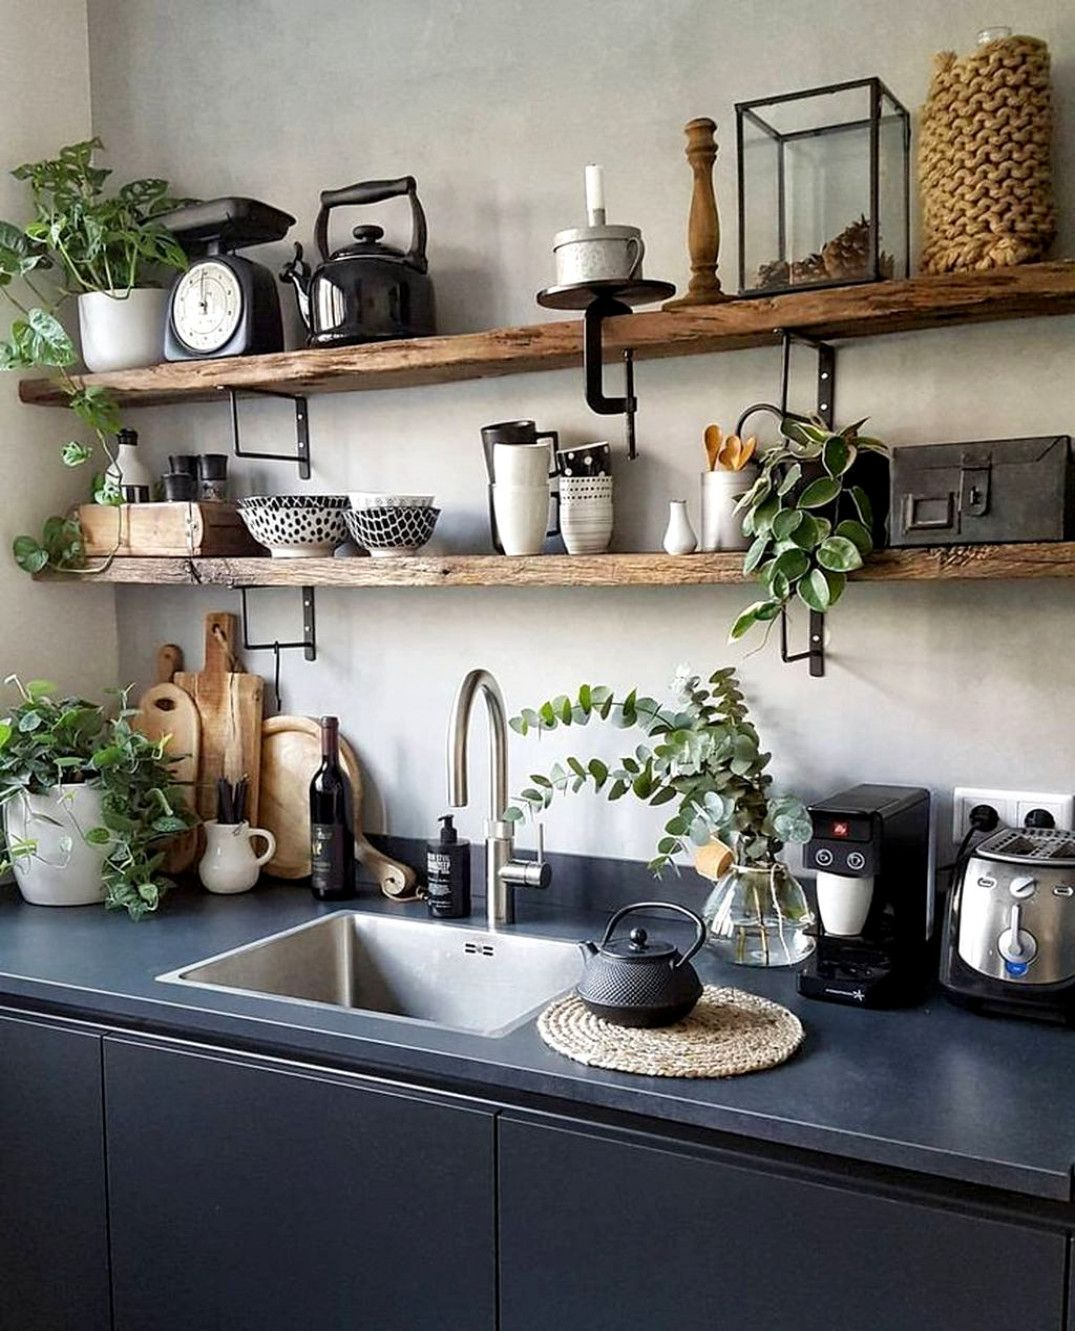 12 Inspiring Kitchen Island Ideas: A Kitchen Island Makes Everything From Cooking To Dining A